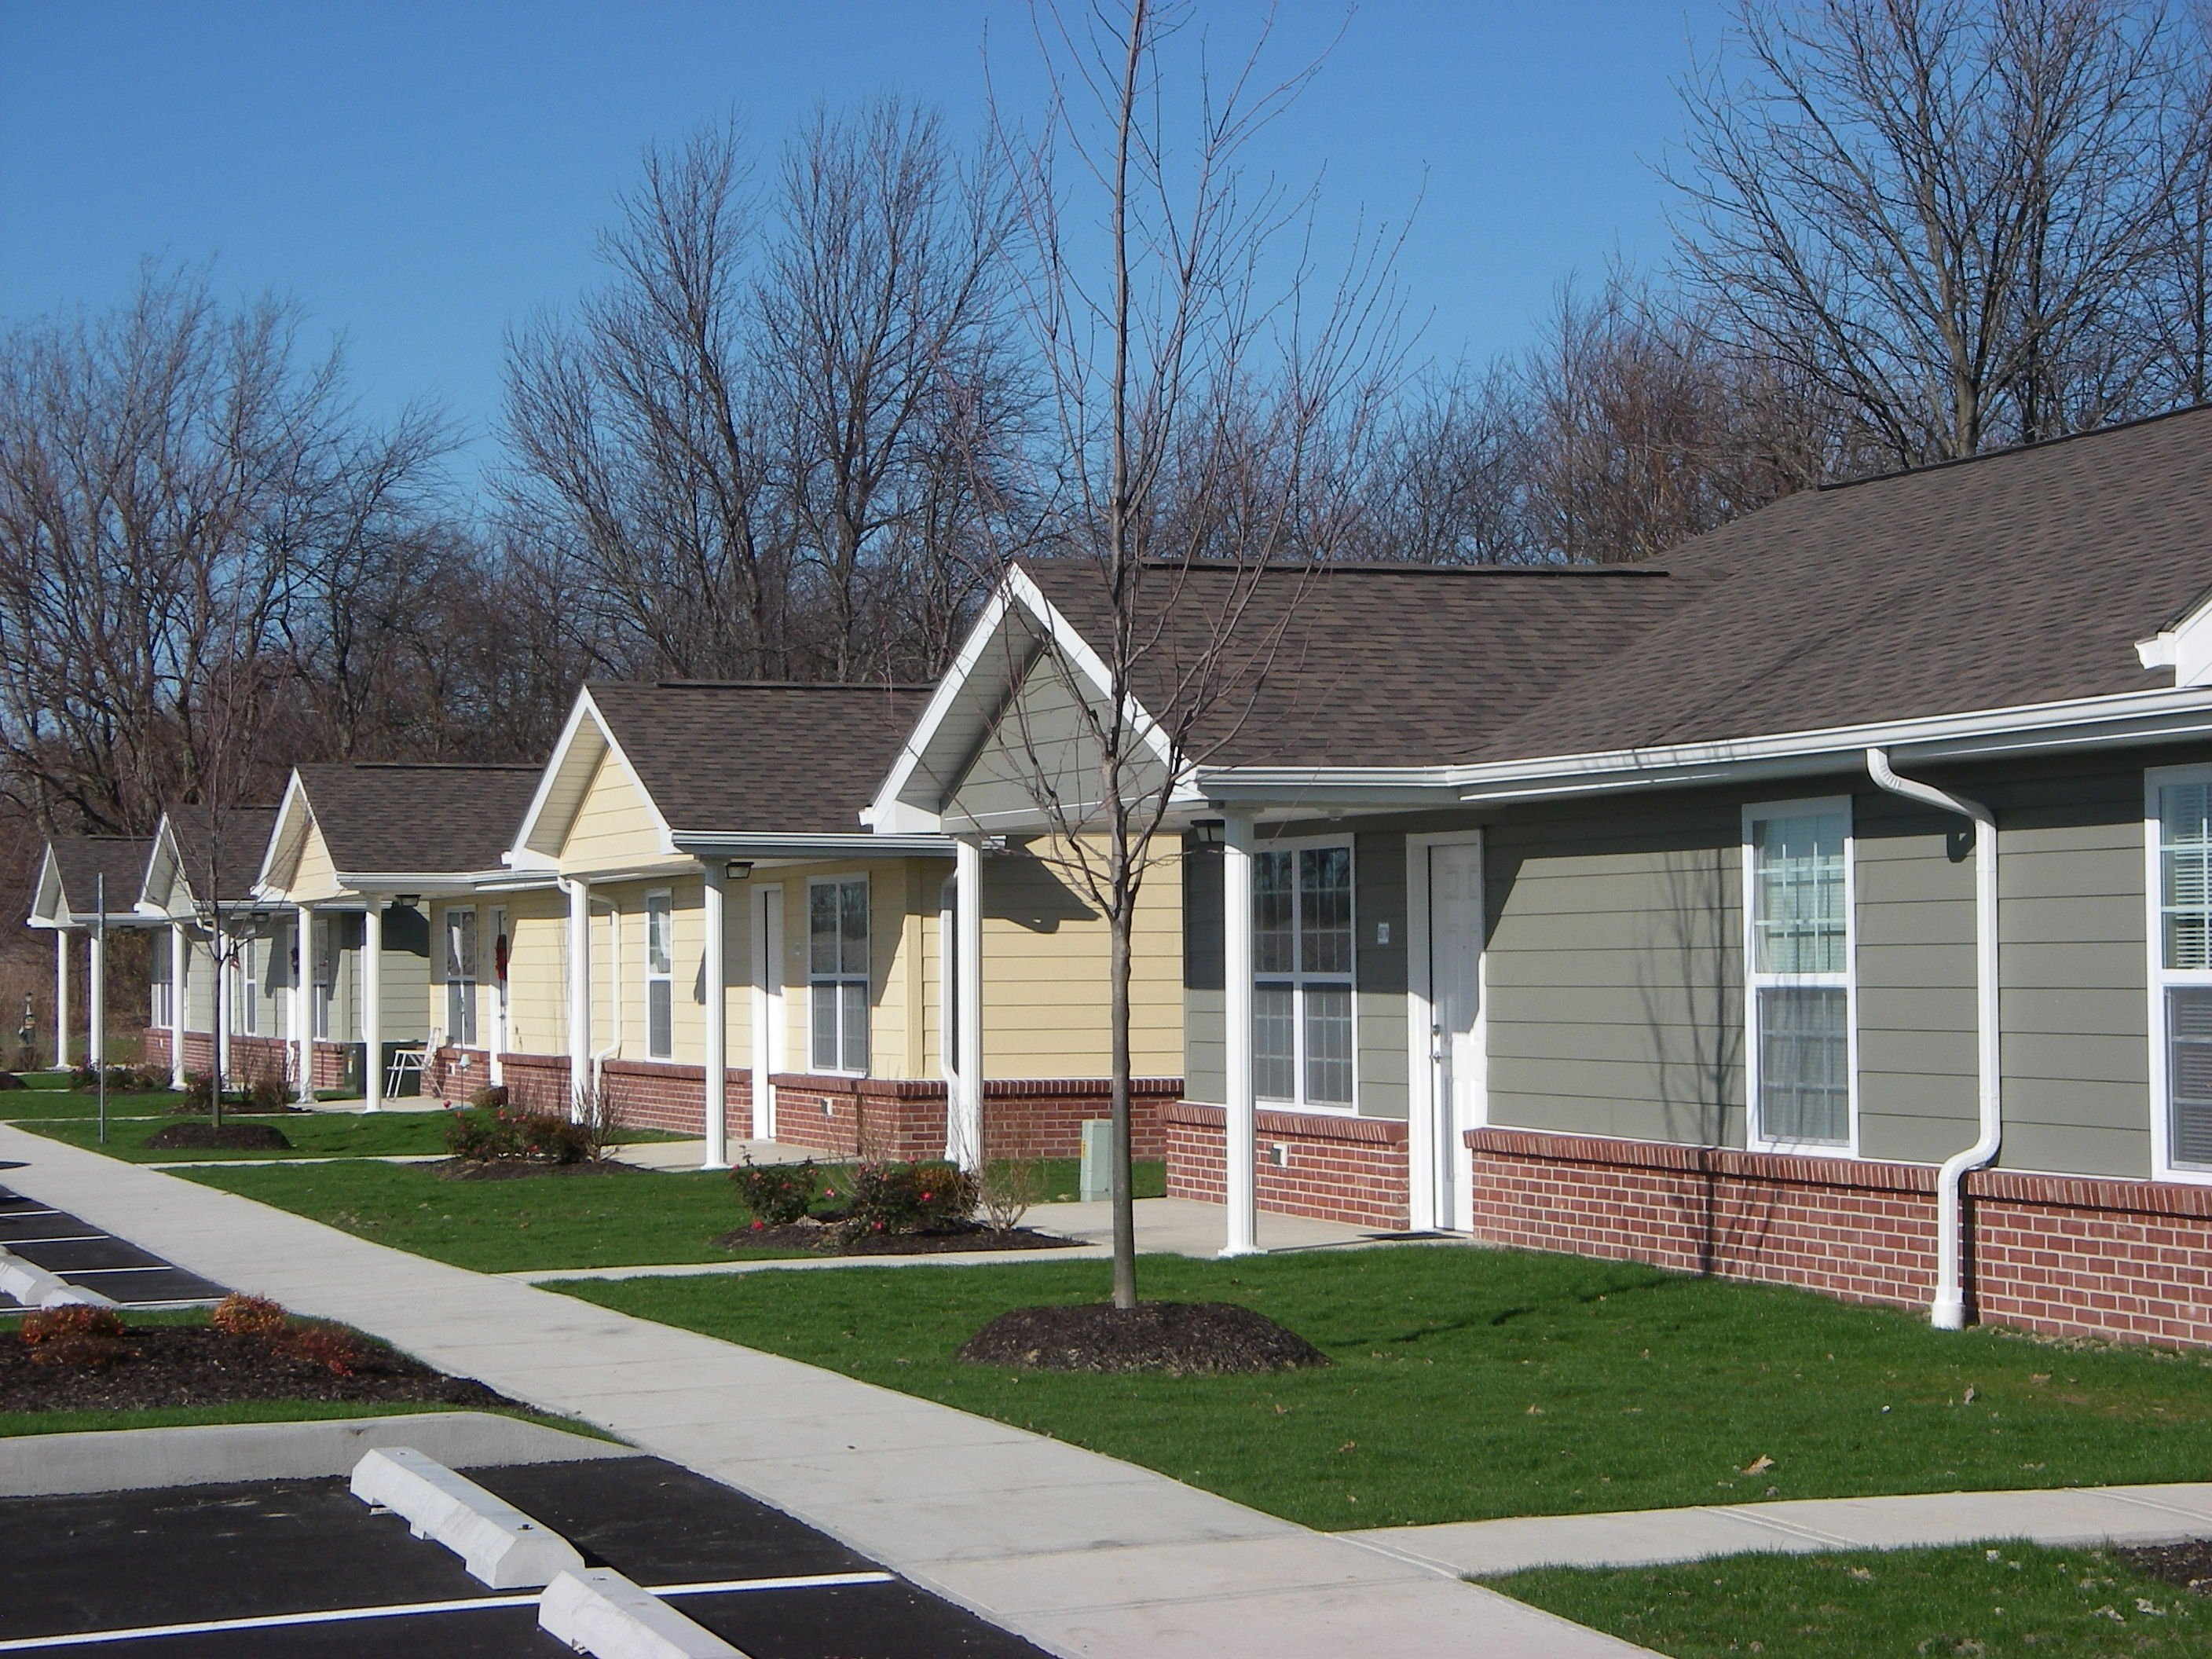 The Indiana Housing and Community Development Authority